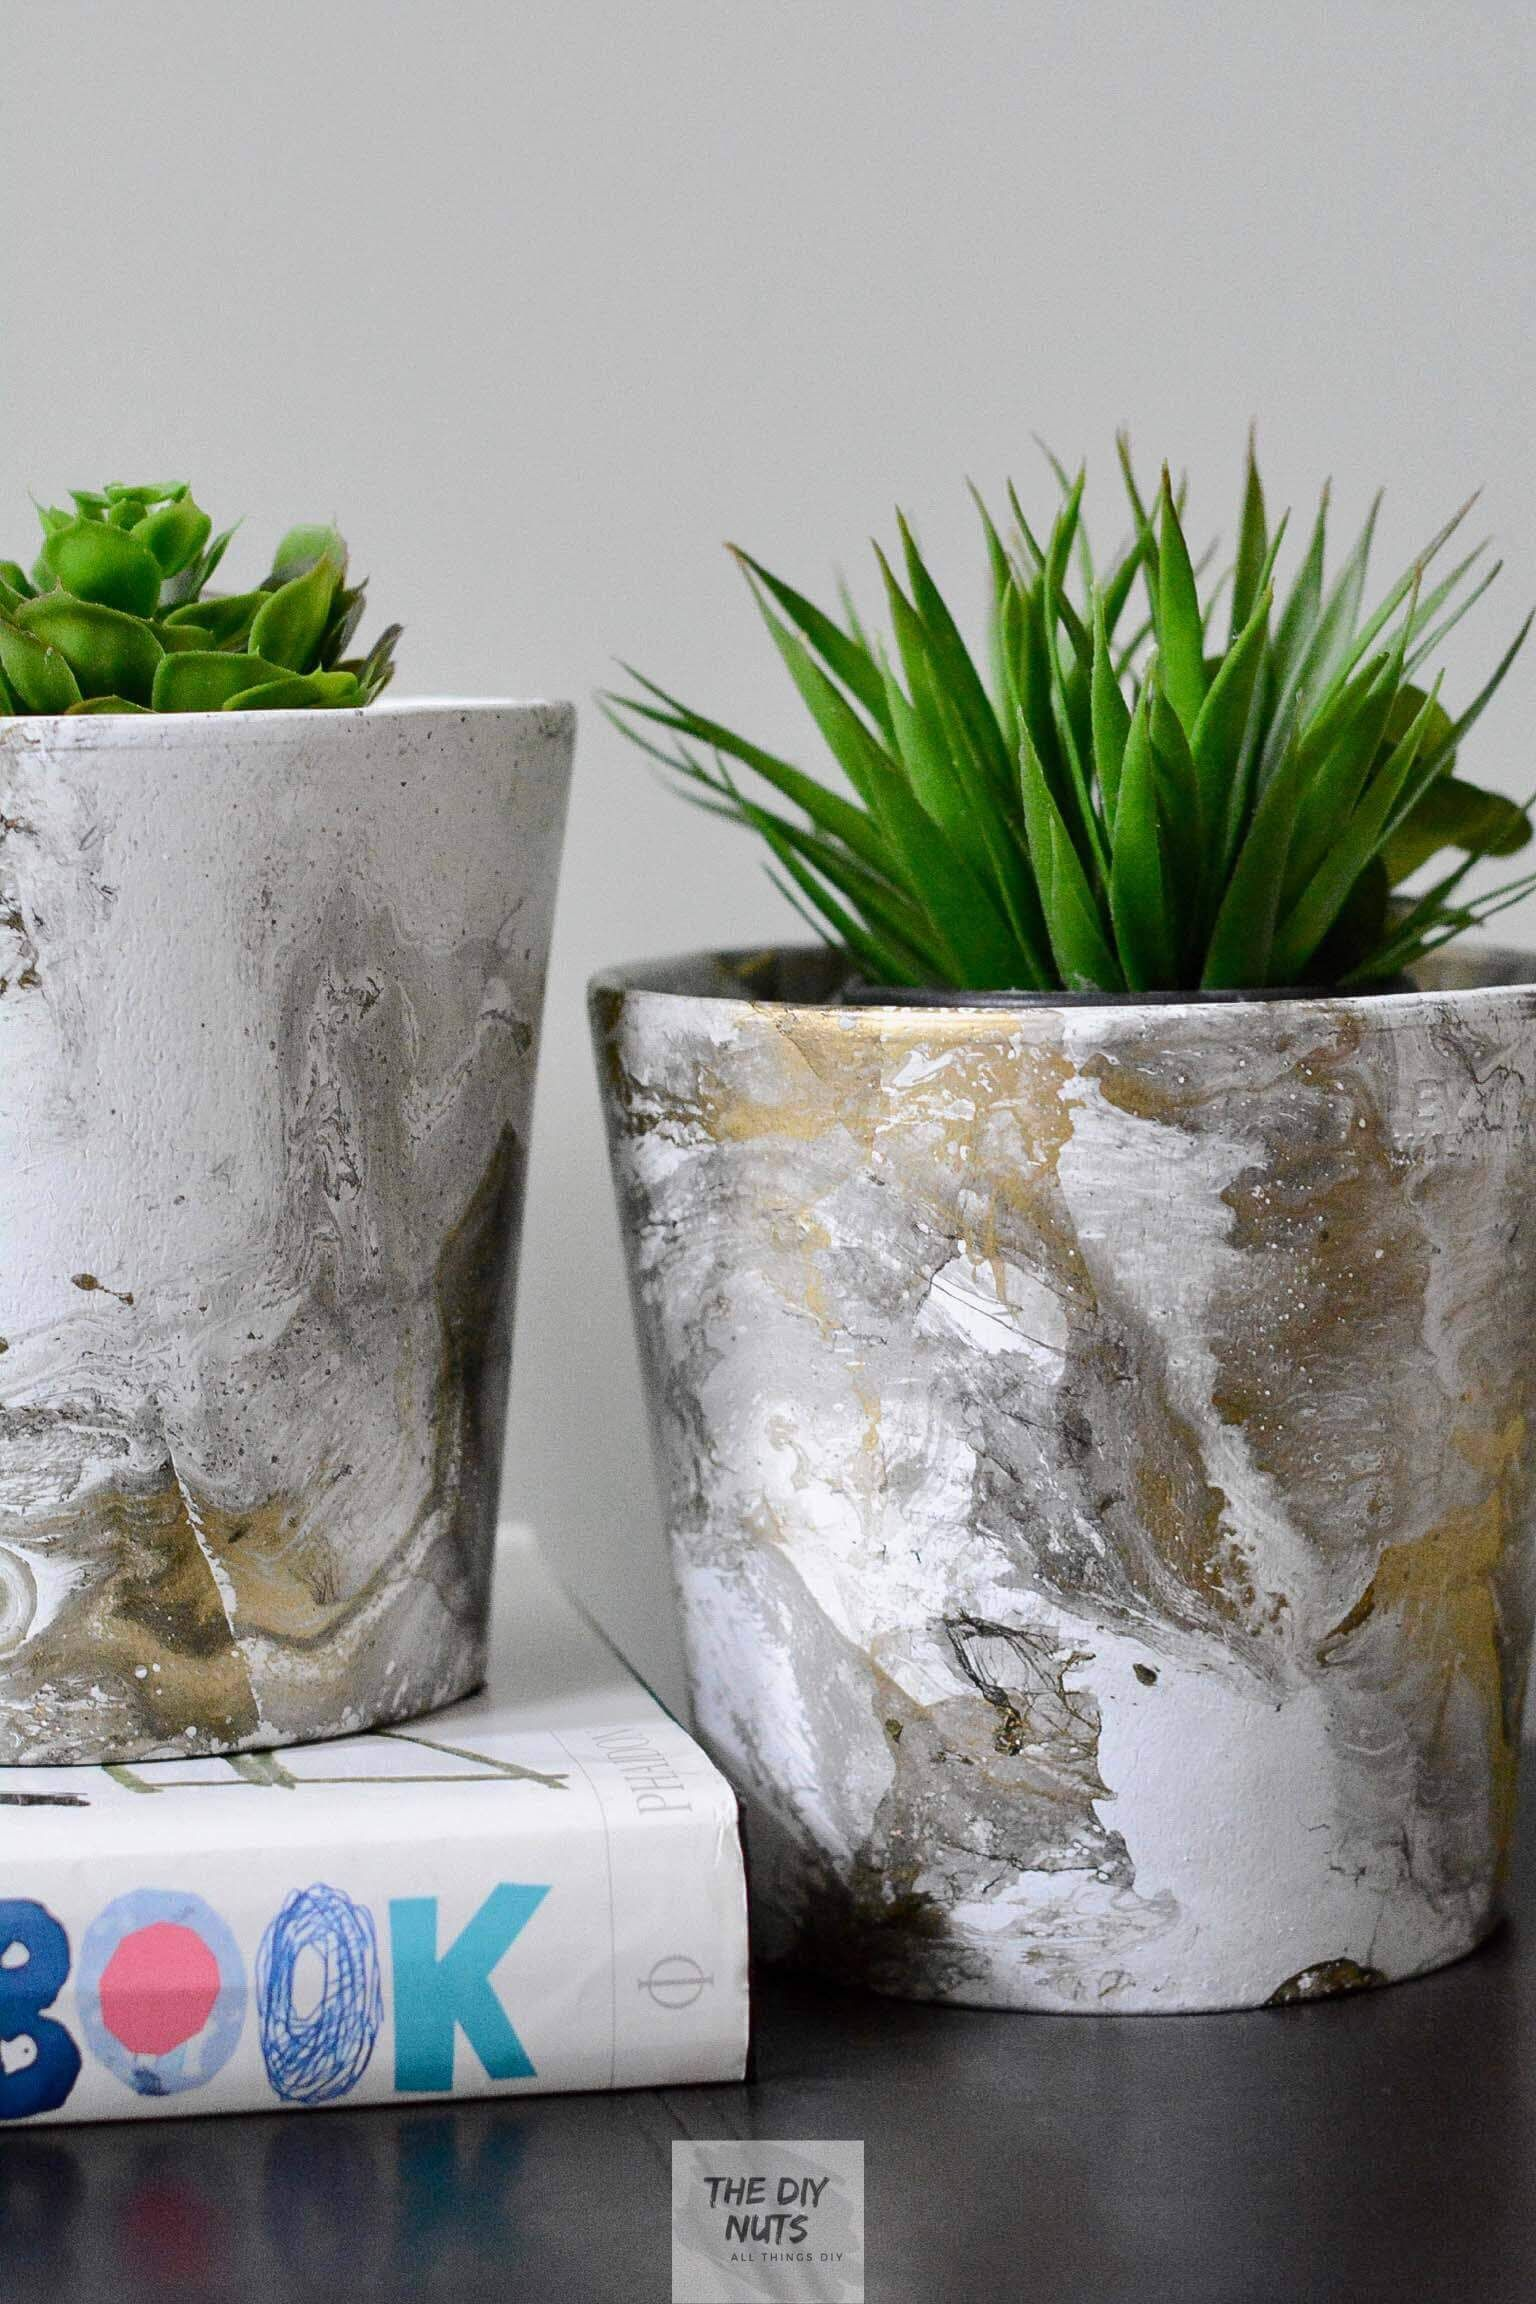 How To Make Easy Diy Marbled Pots Which Is The Best Paint Marbling Technique Painted Pots Diy Diy Flower Pots Marbling Techniques